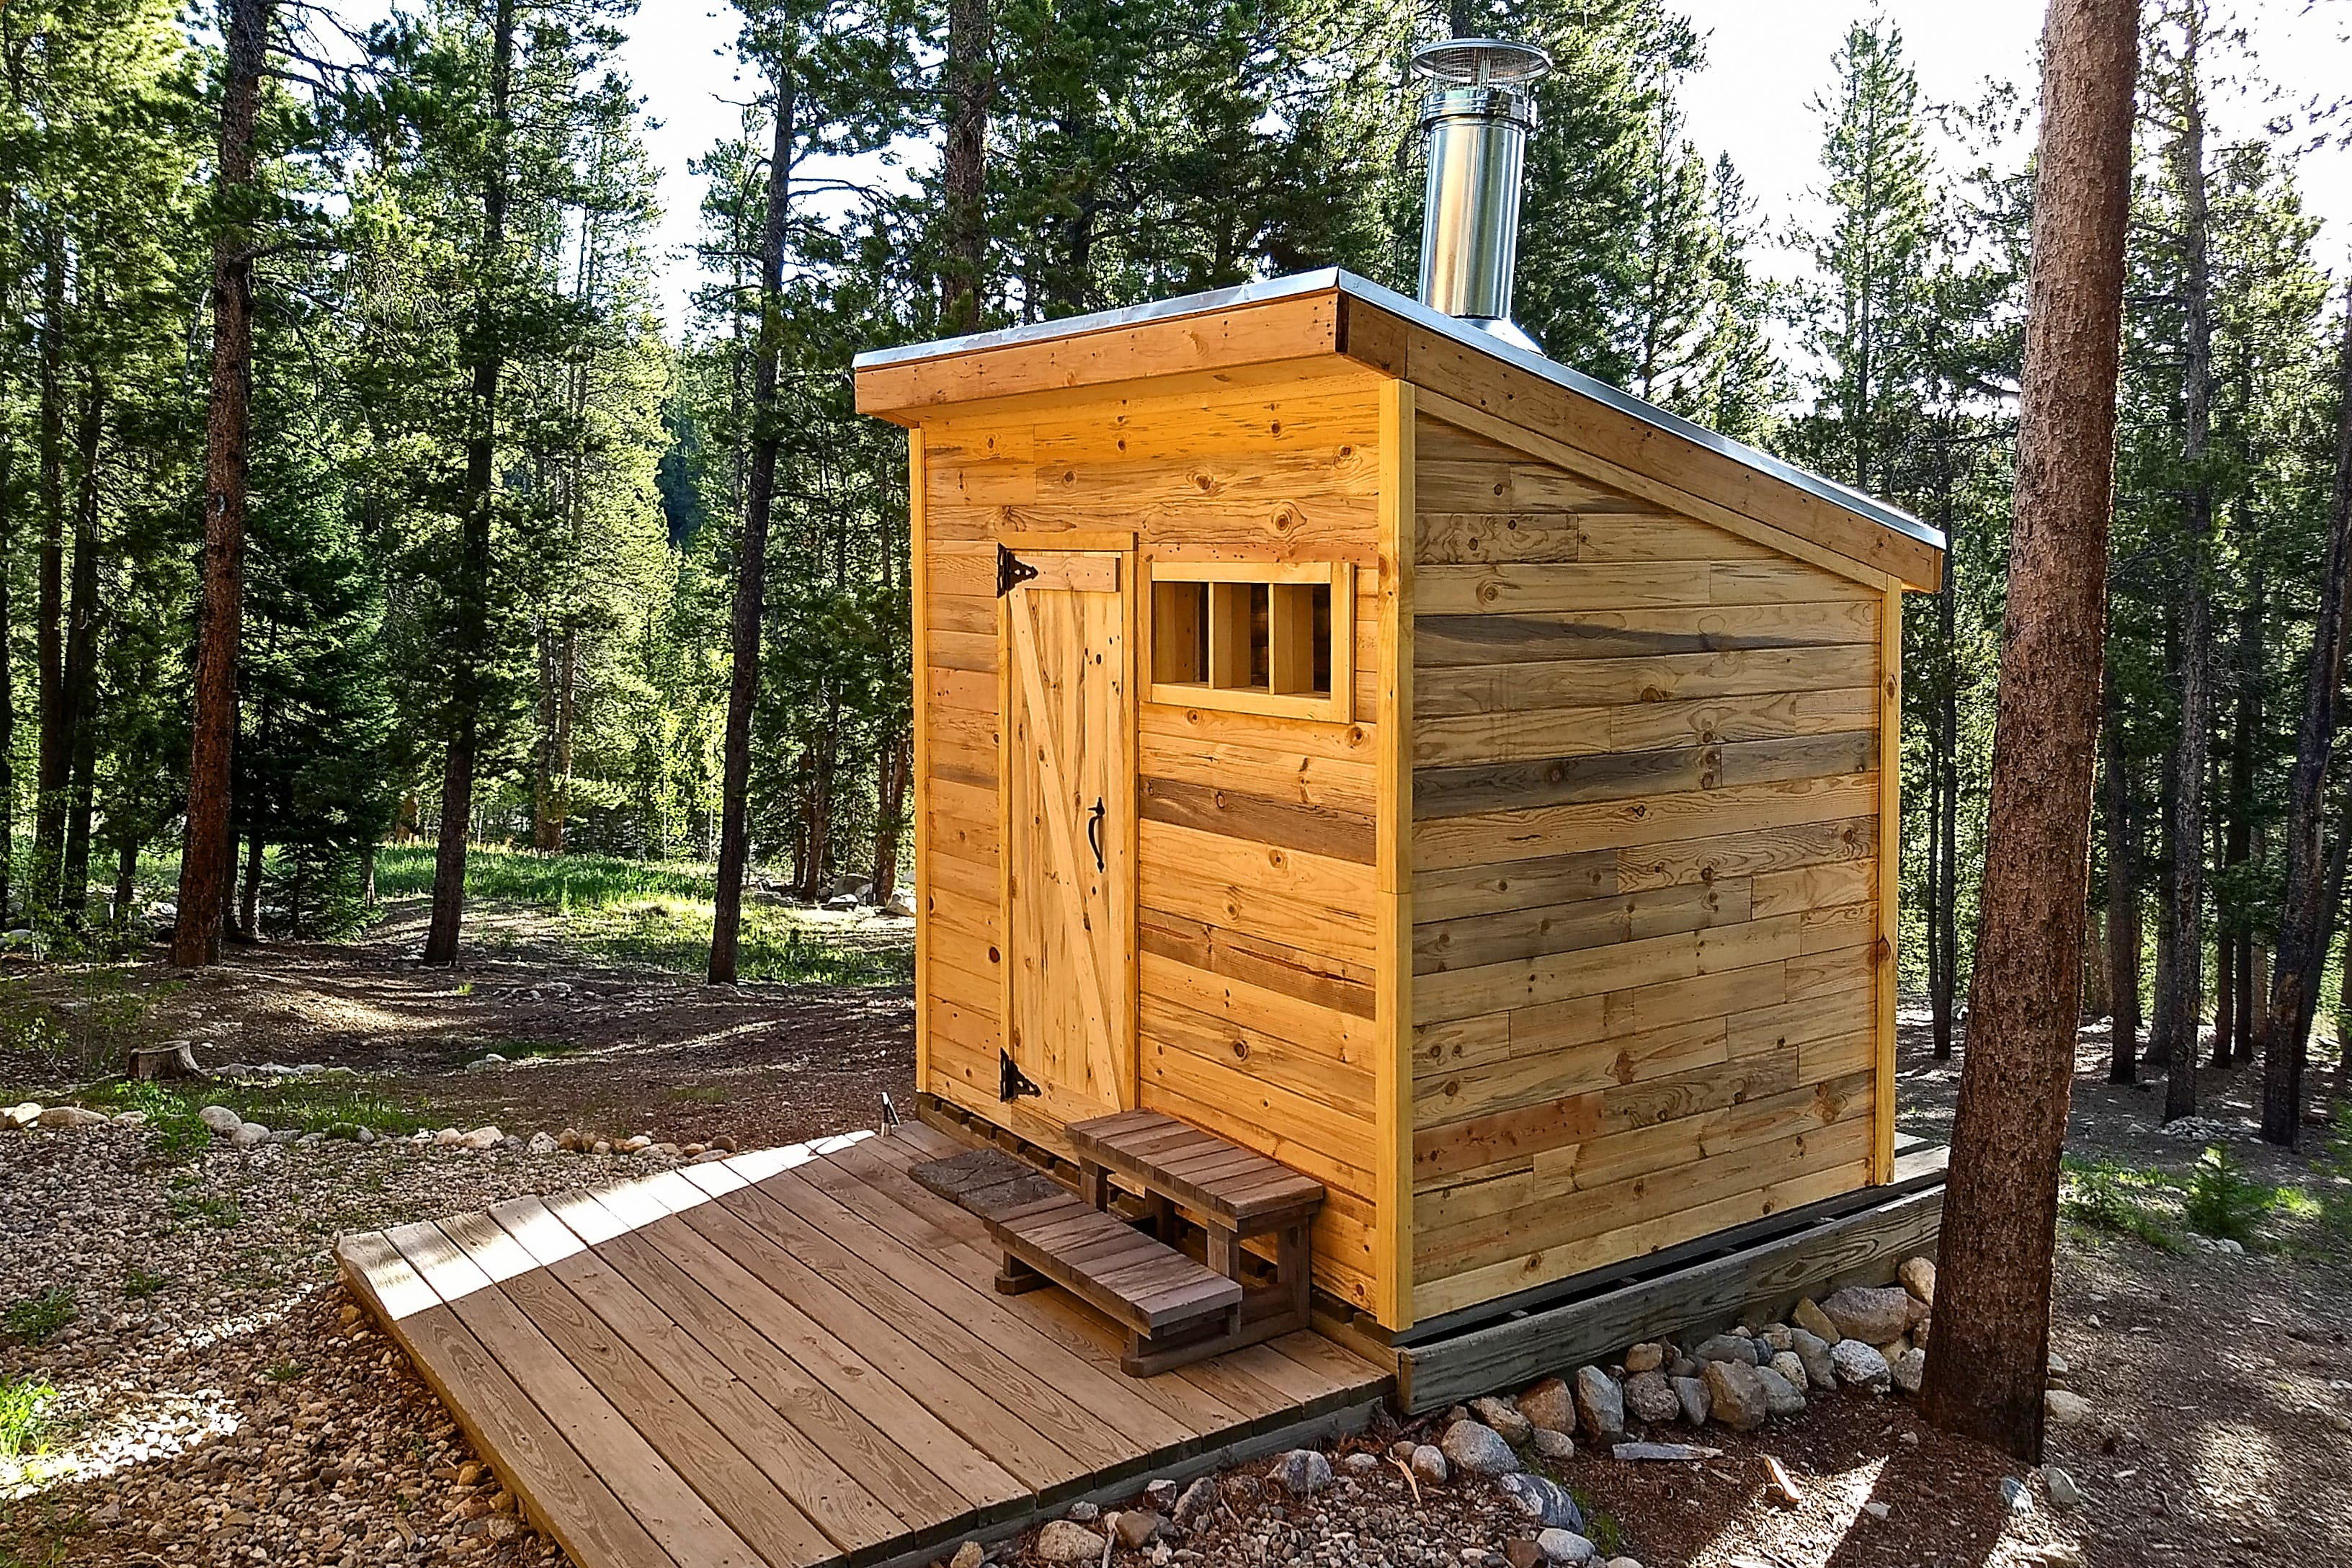 Relax and unwind in the outdoor wood burning sauna!